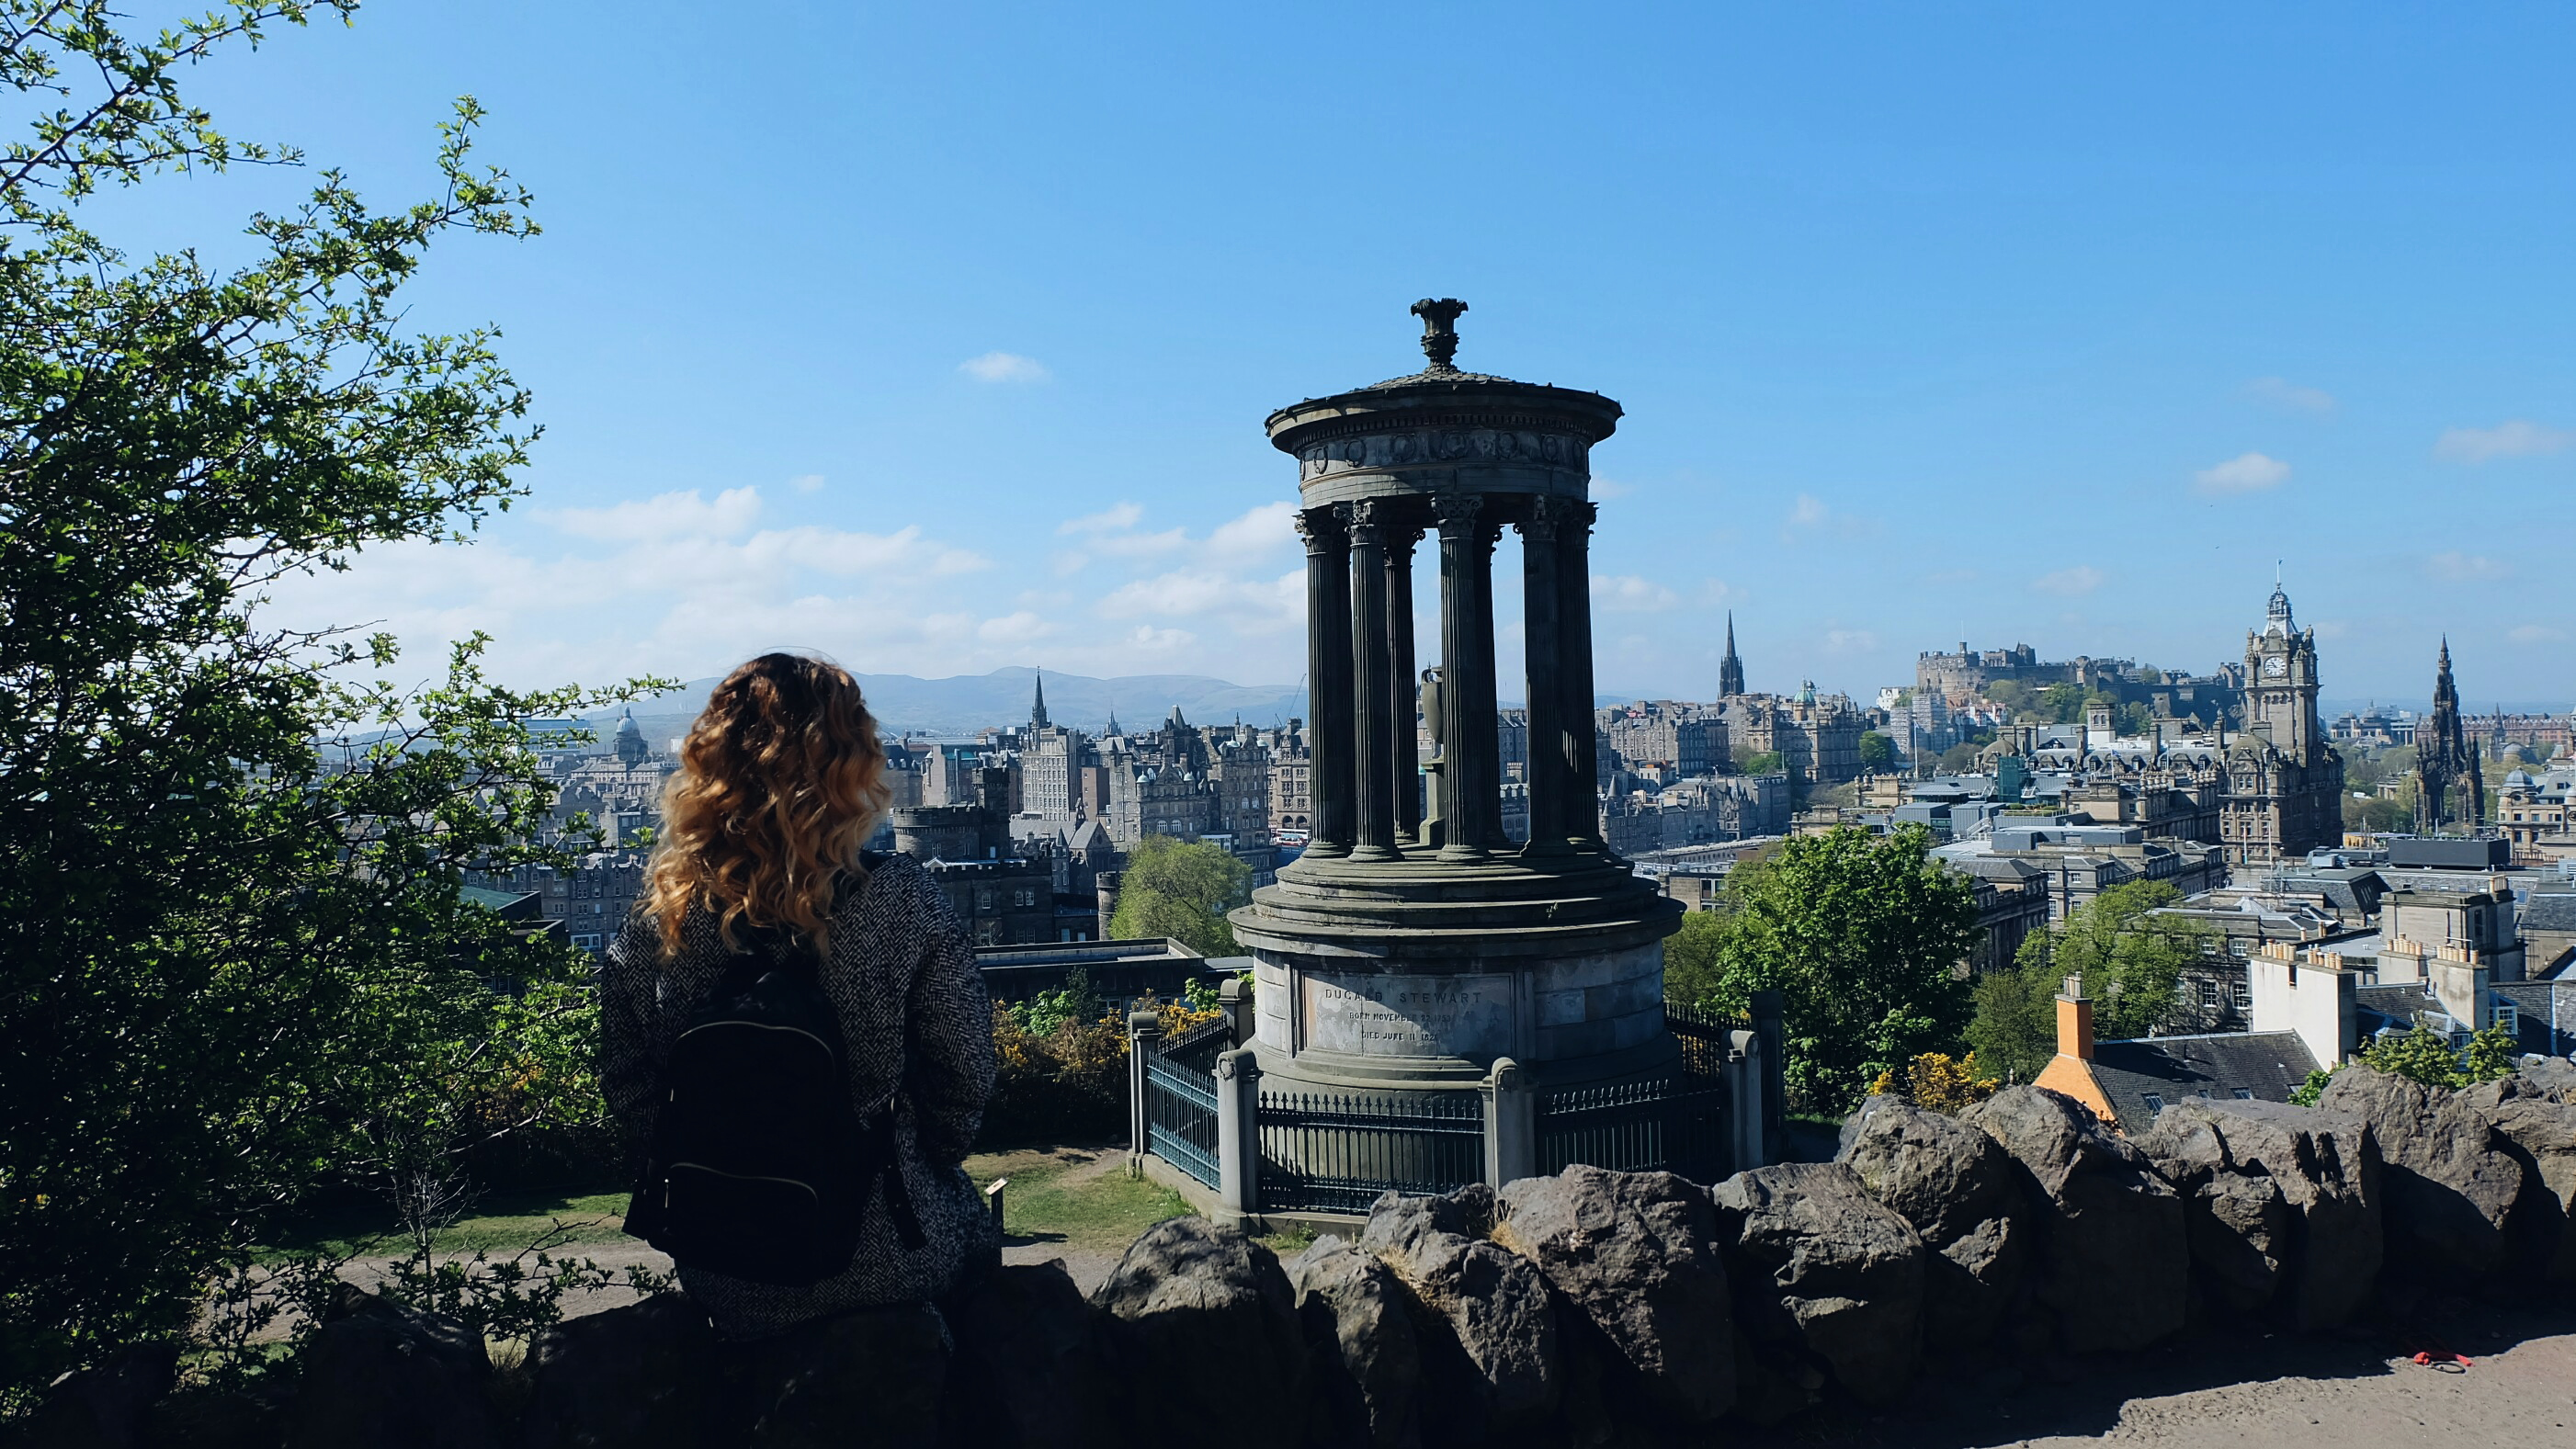 Overlooking the city of Edinburgh Calton Hill